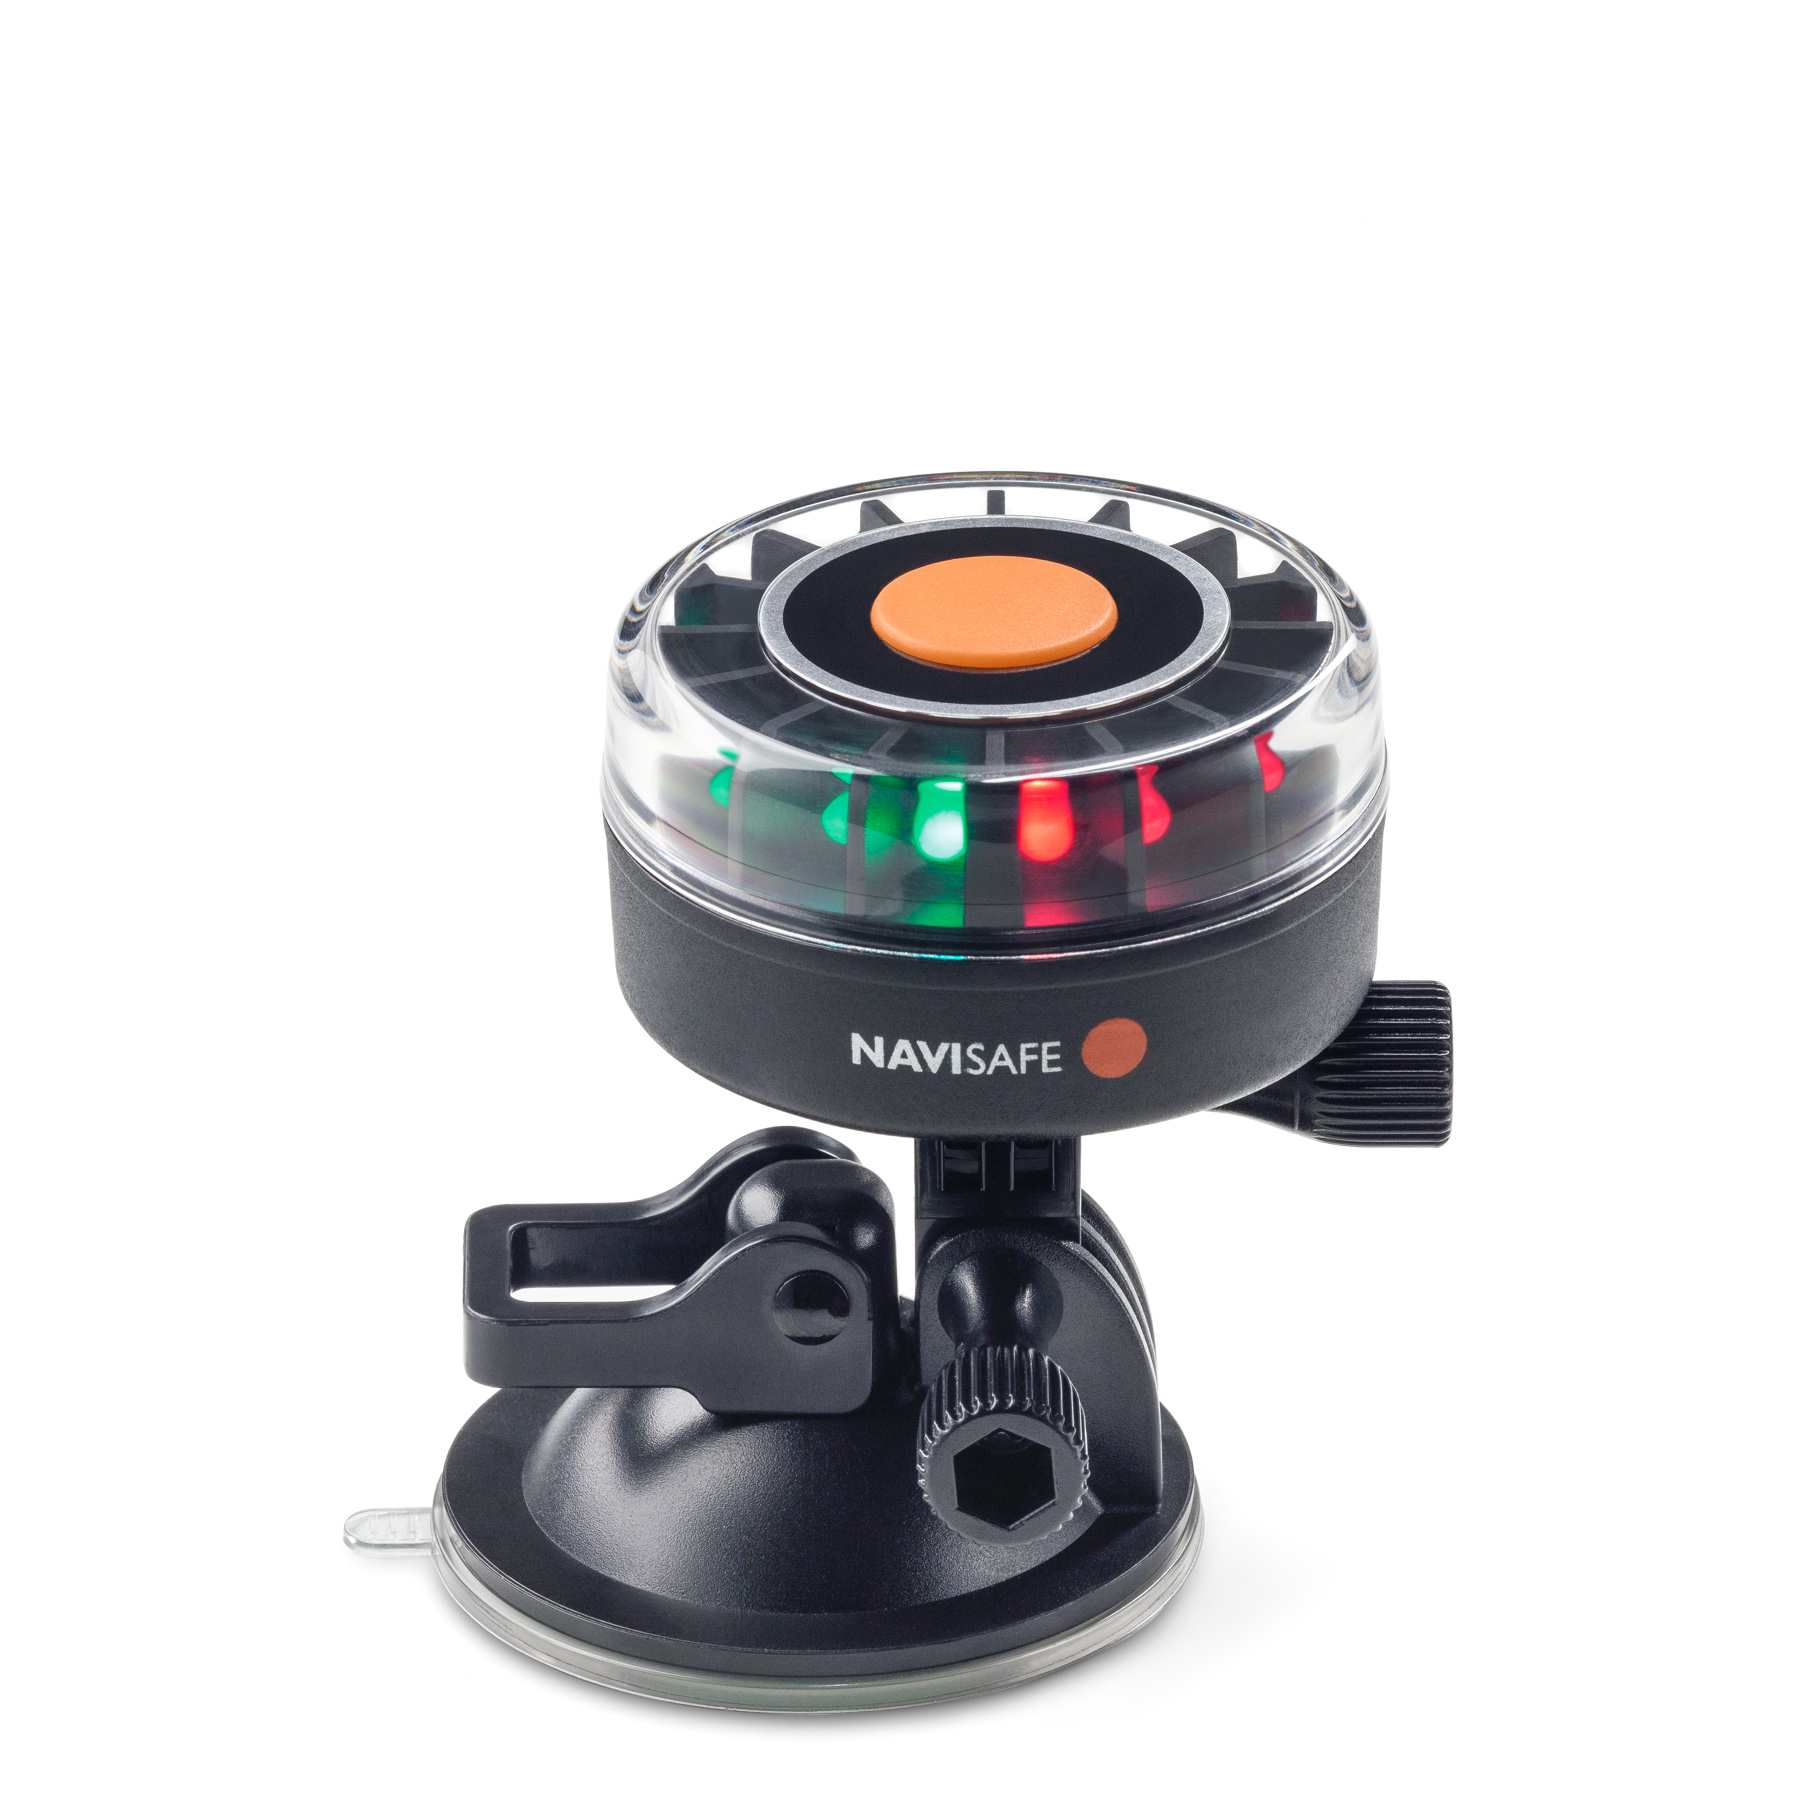 Navilight 360° S 2NM tricolor double function holder